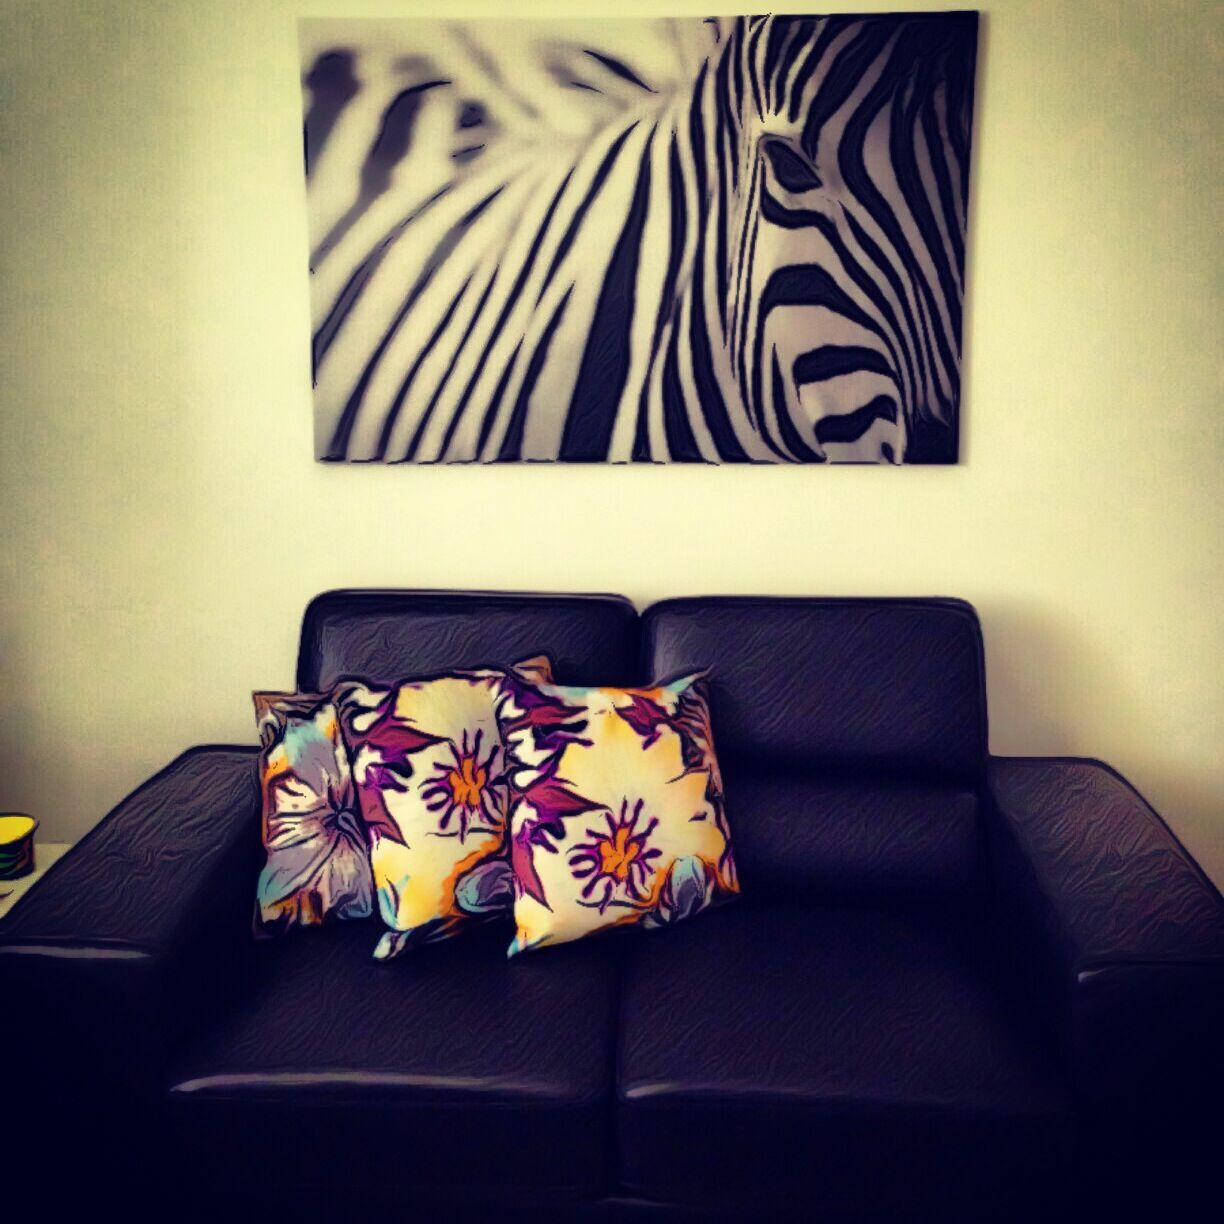 ikea\'s zebra painting on our wall | Home | Pinterest | Zebra ...